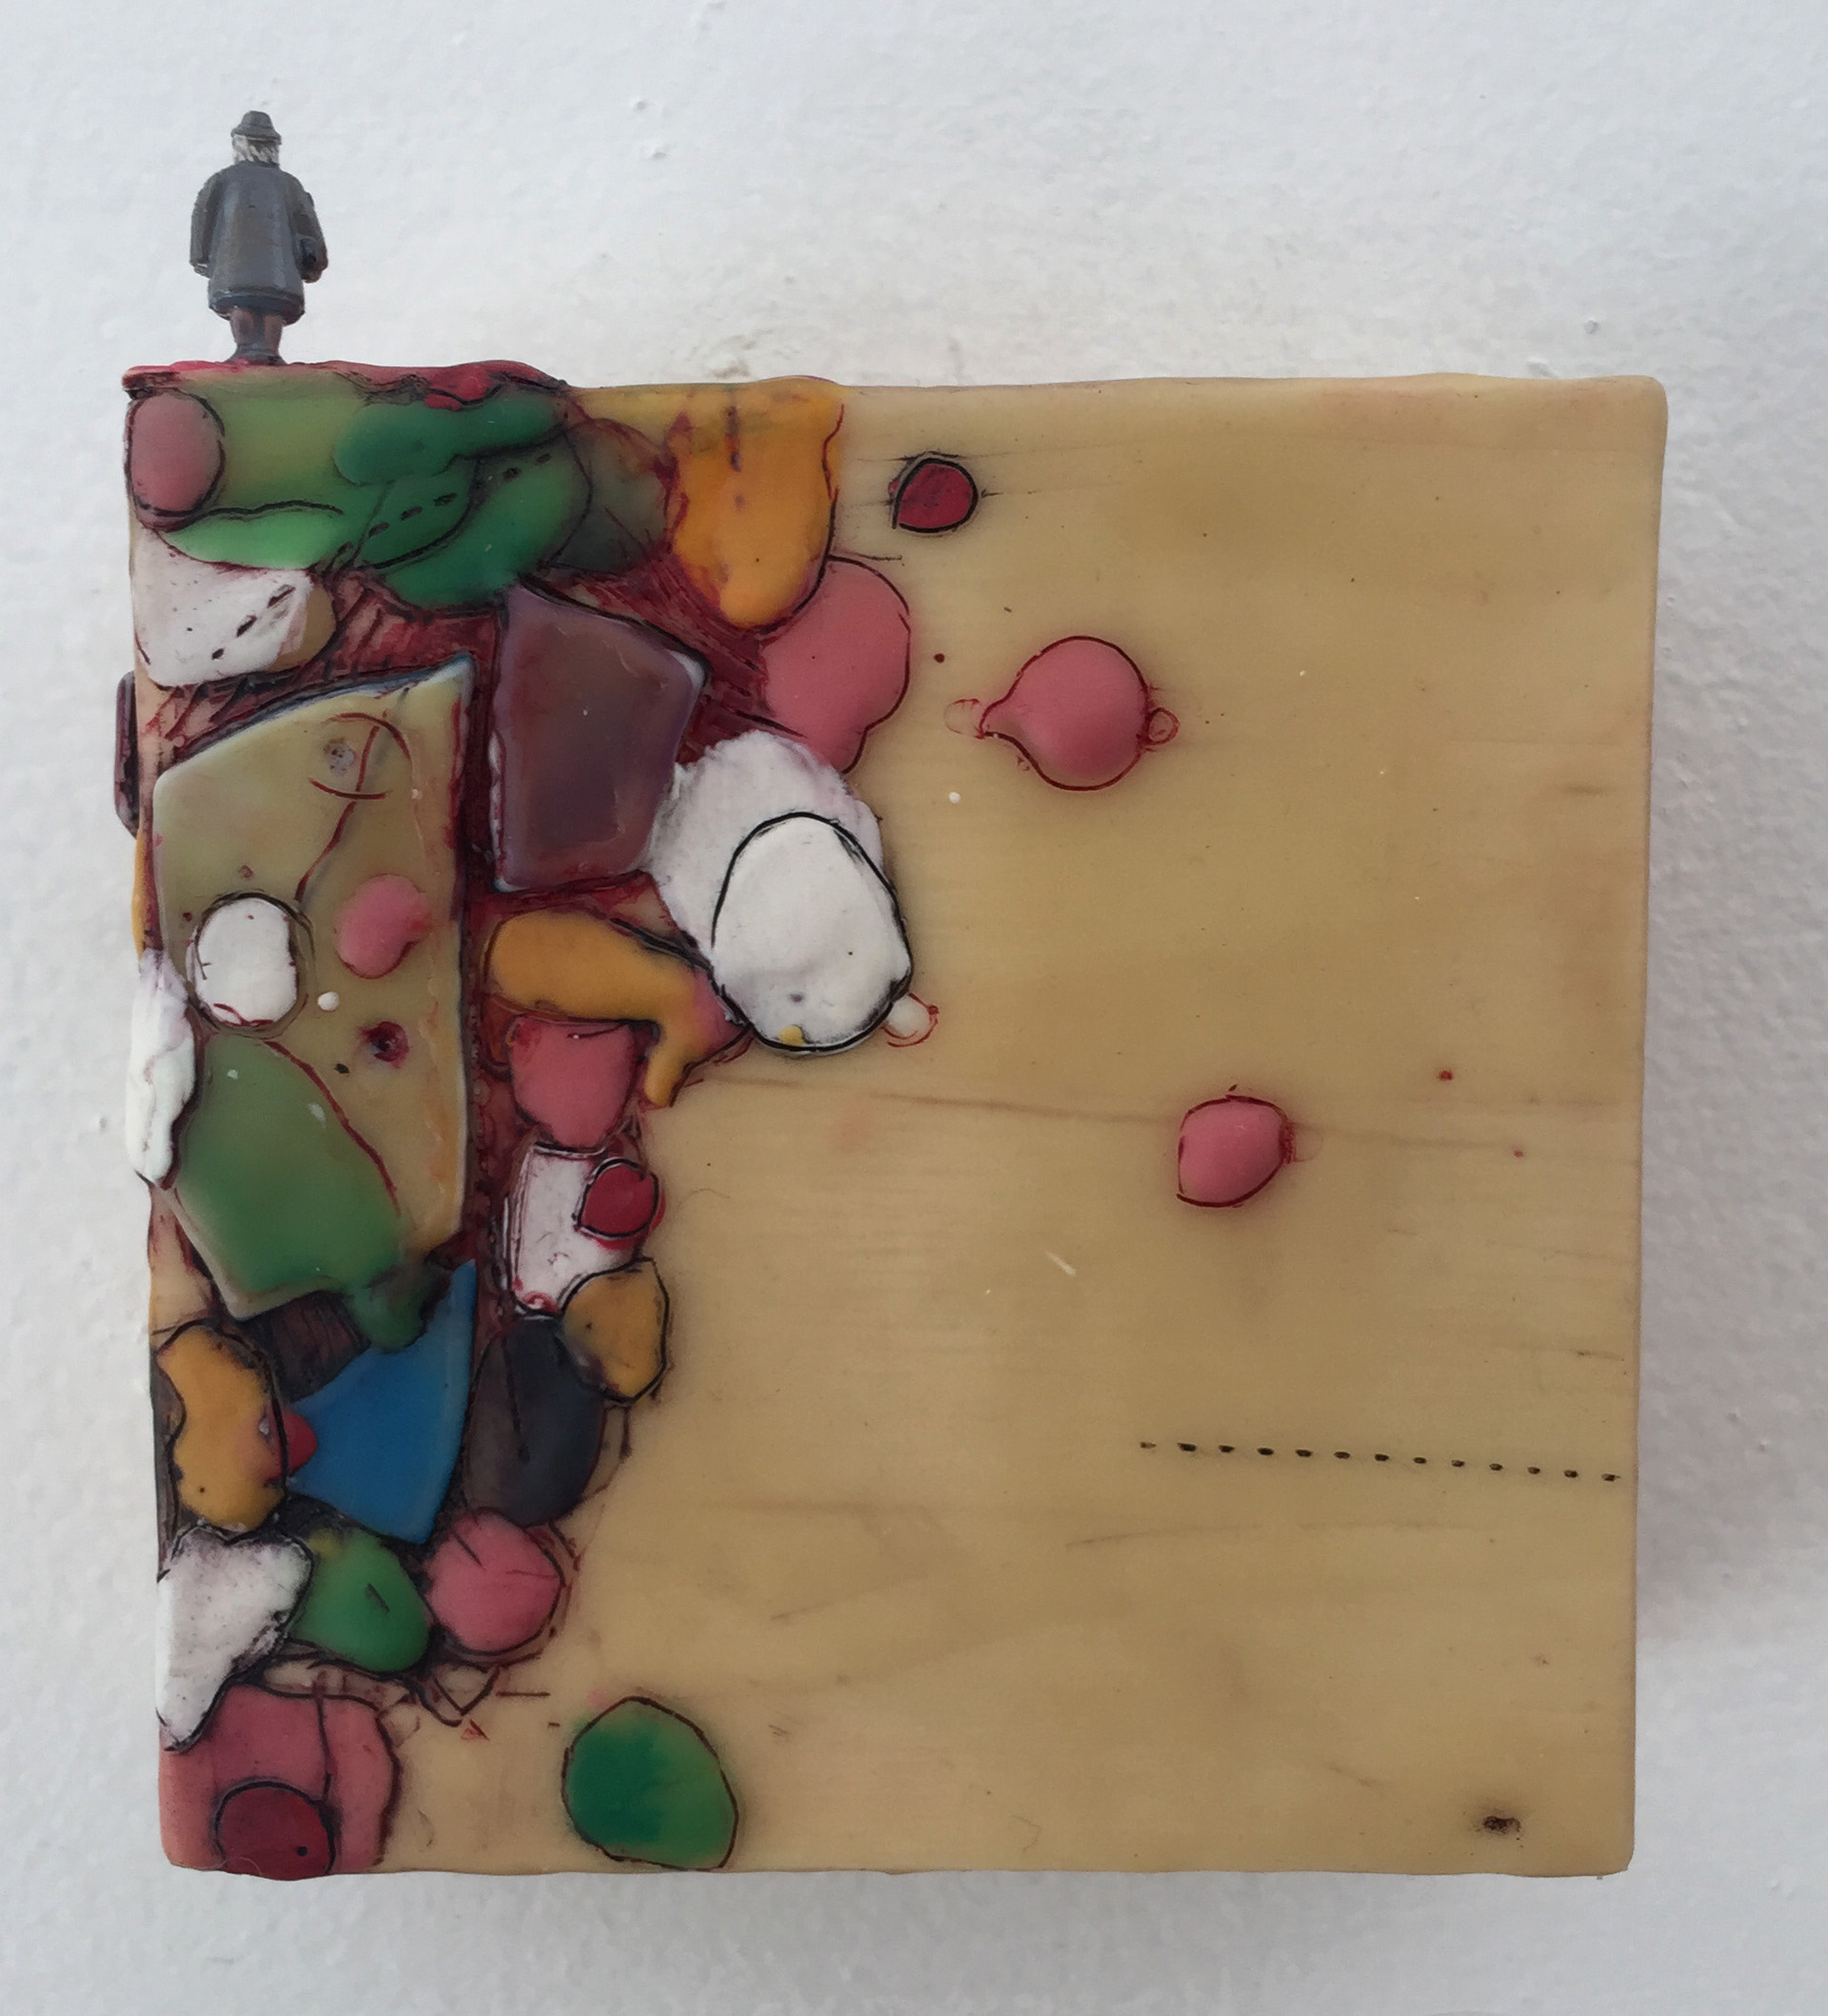 Hélène Farrar, What We Carry: Later On, encaustic and painted small person model, 4 x 4 inches